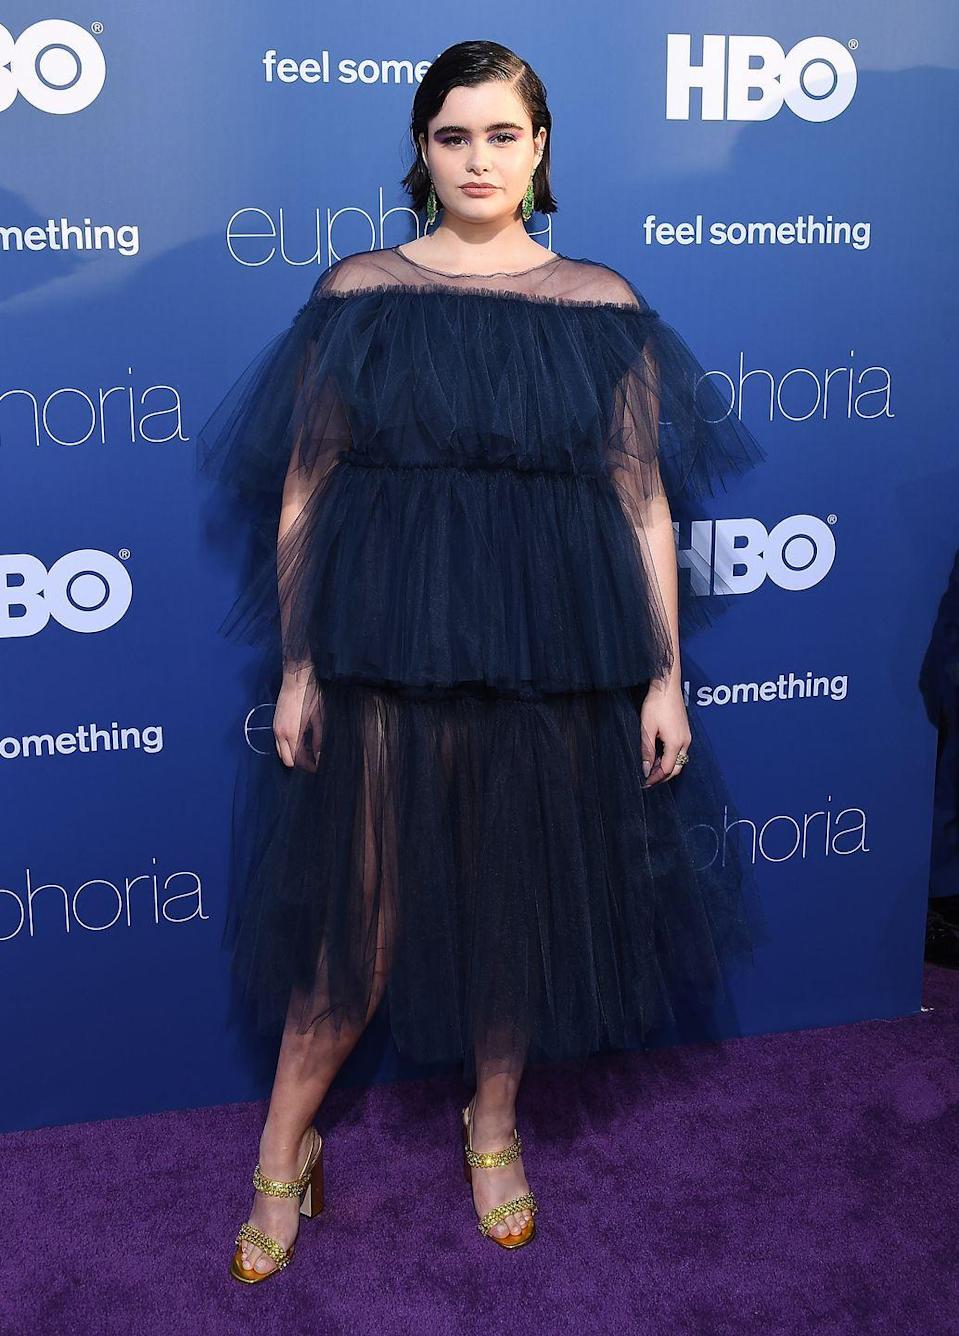 <p>Whether it has tulle or lace, you can't go wrong with a dark, feminine and chic dress, like the one Barbie Ferreira wore to the Euphoria premiere.</p>